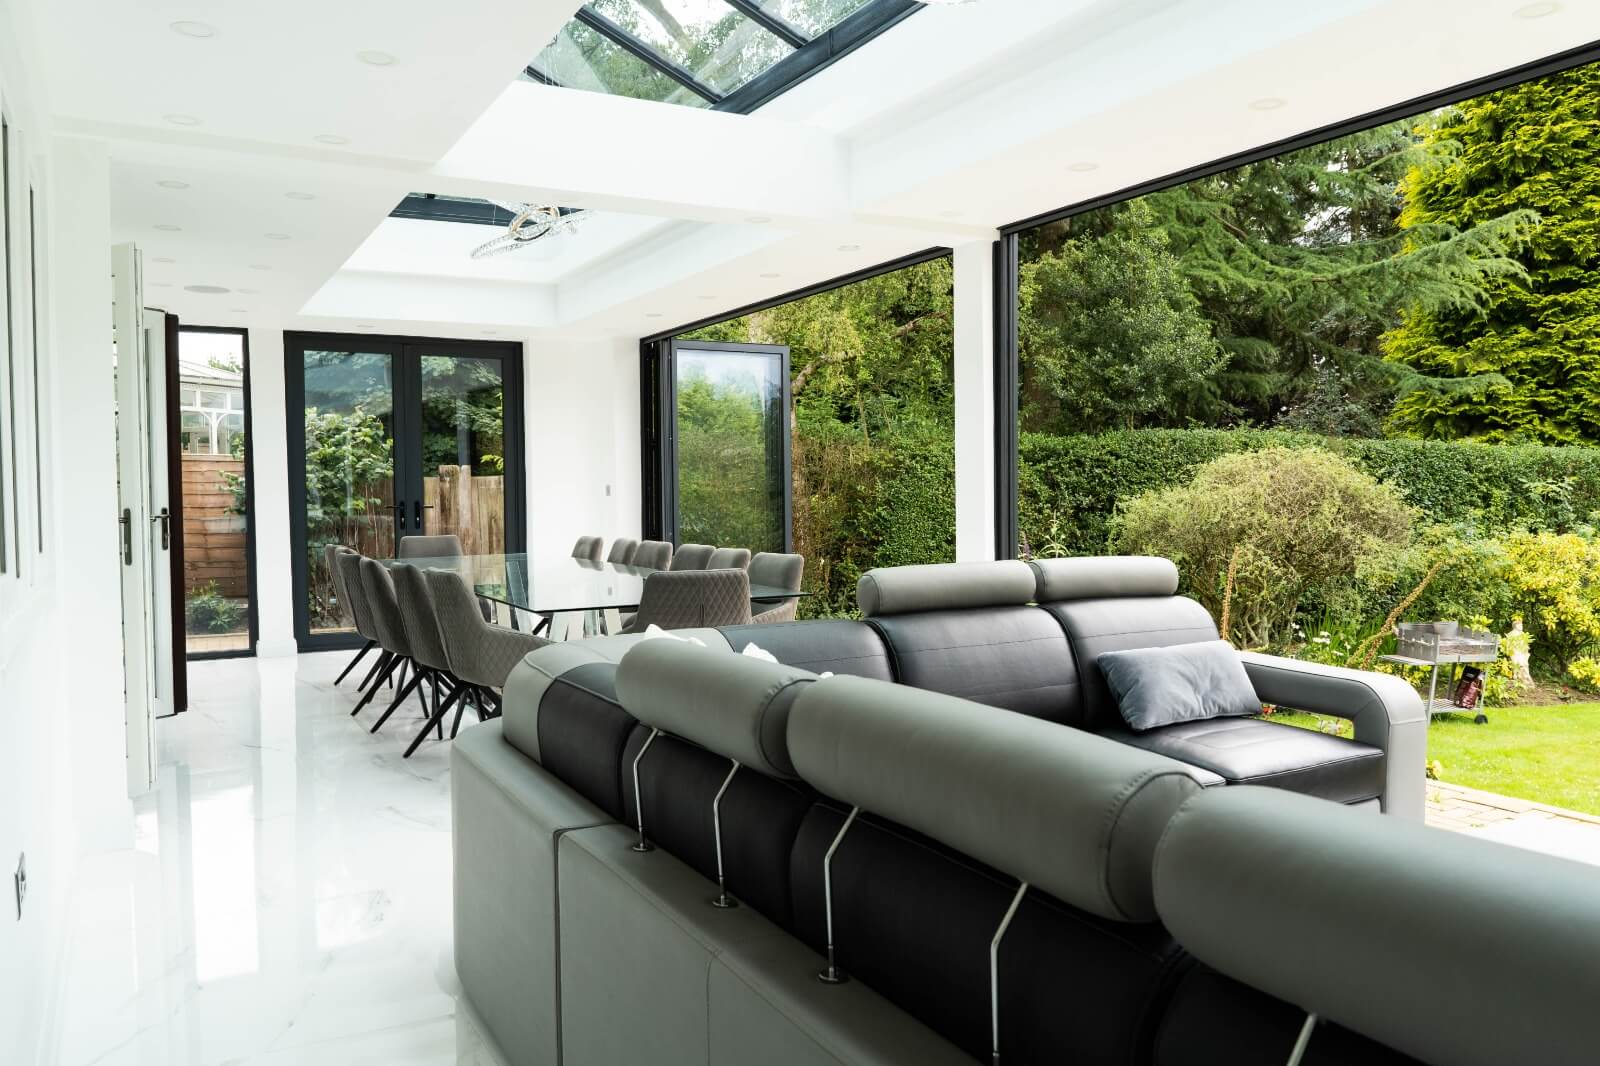 Conservatory Furniture, Flooring & Lighting Ideas For 2020: The Ultimate Conservatory Interior Design Guide Feature Image